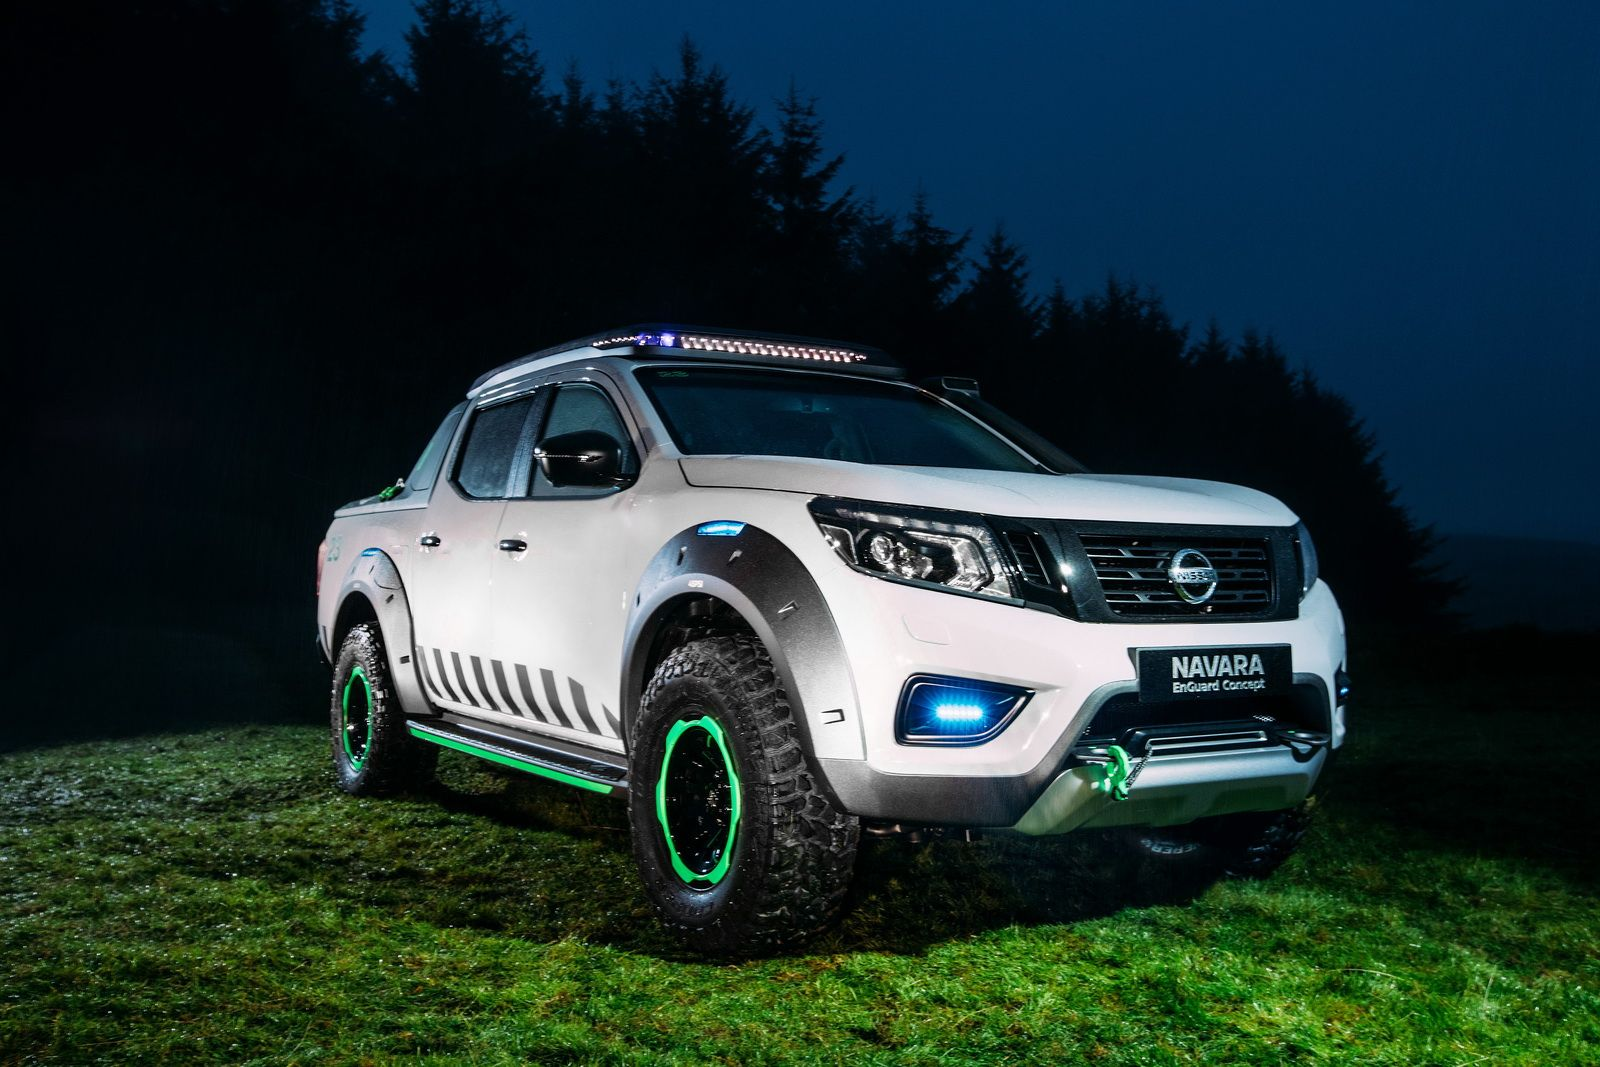 Nissan has officially unveiled the new navara enguard concept during the 2016 iaa commercial vehicle show in hanover